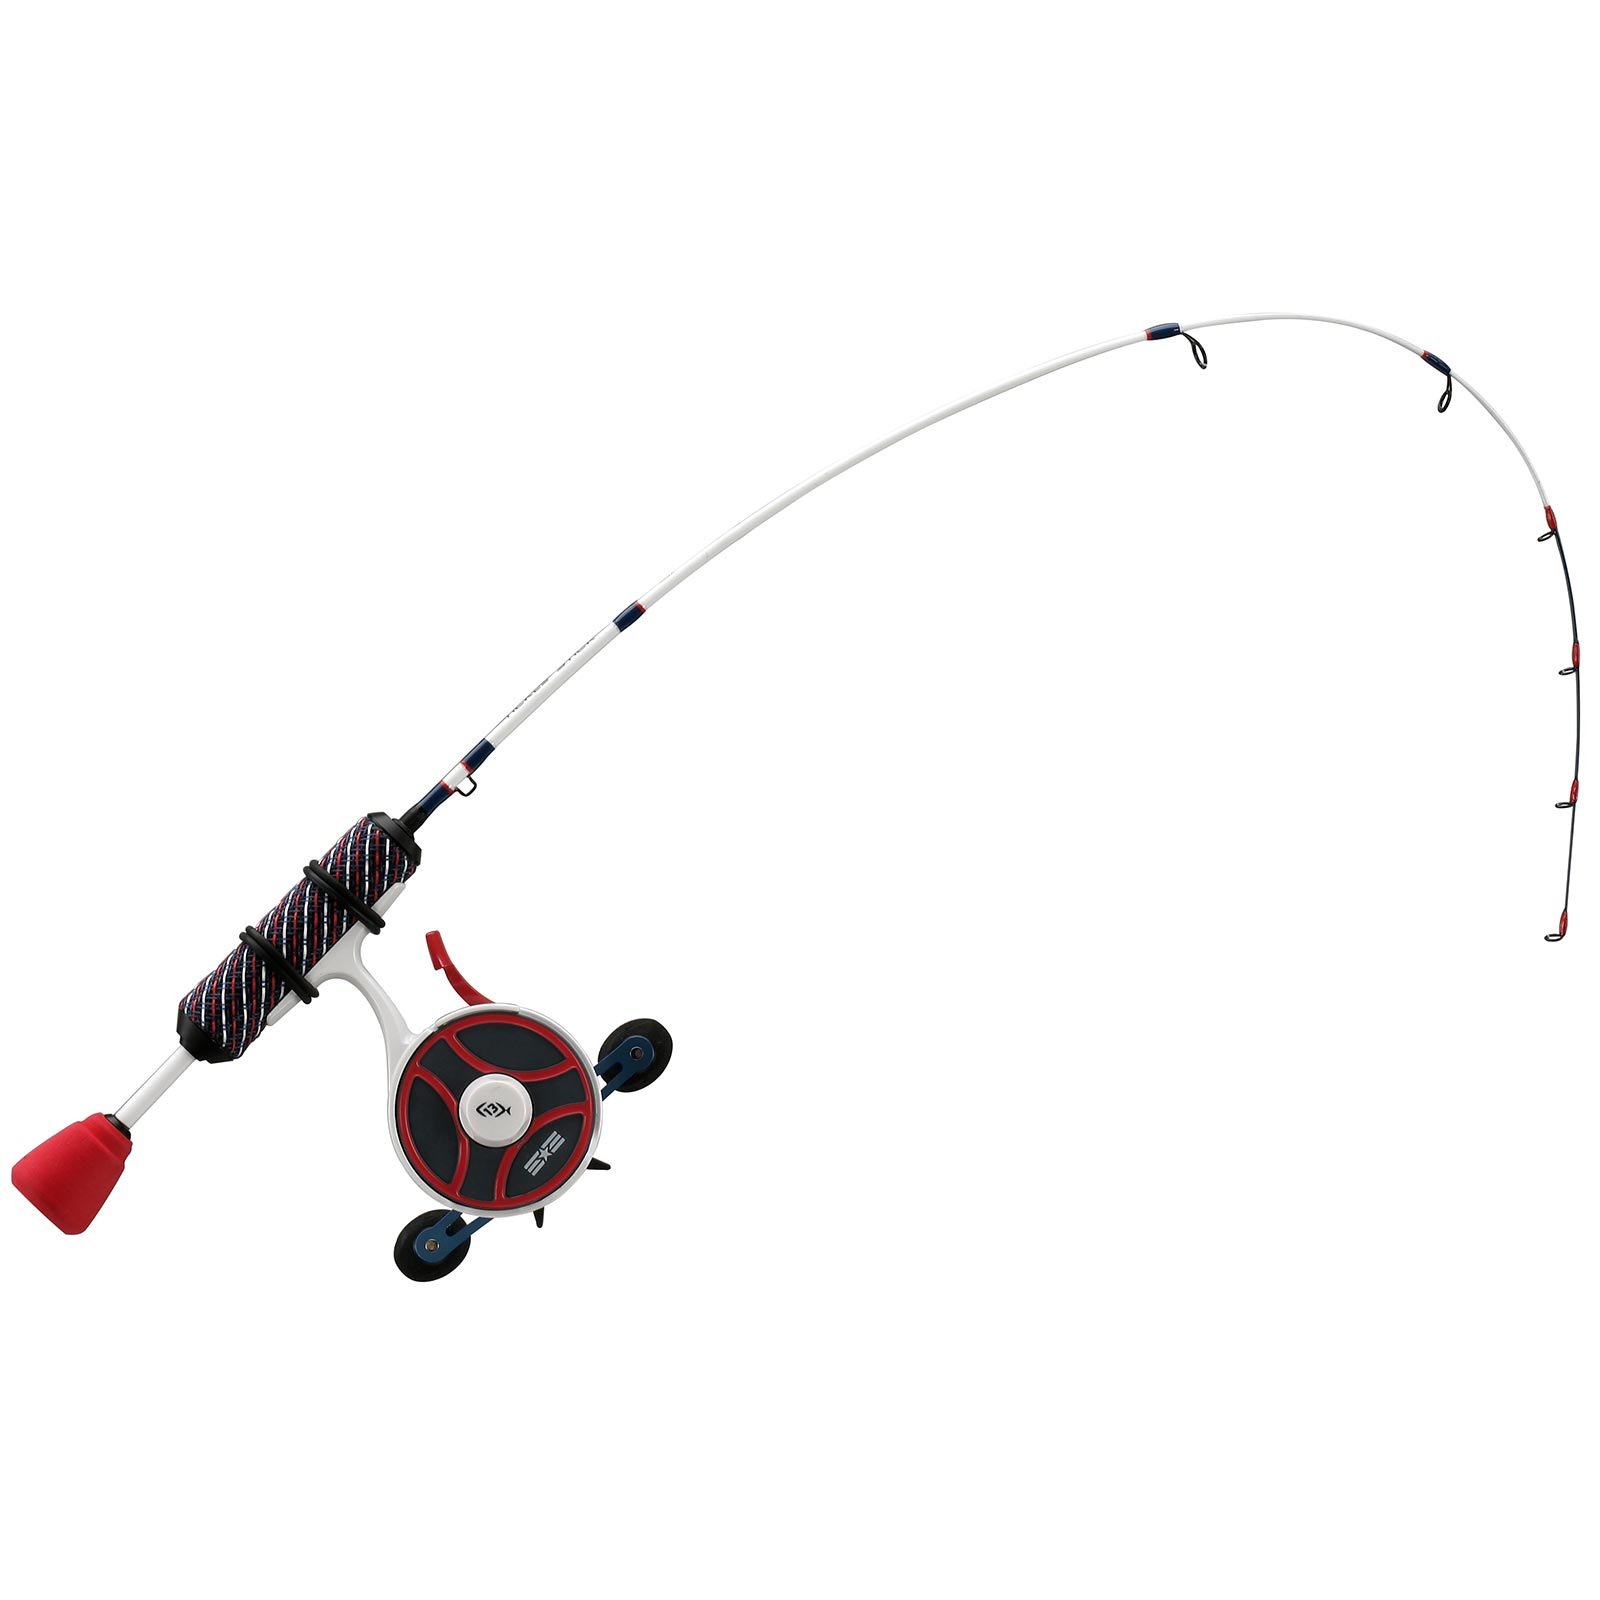 13 Fishing Black Betty FreeFall Ghost Patriot Edition Inline Ice Combo In Use